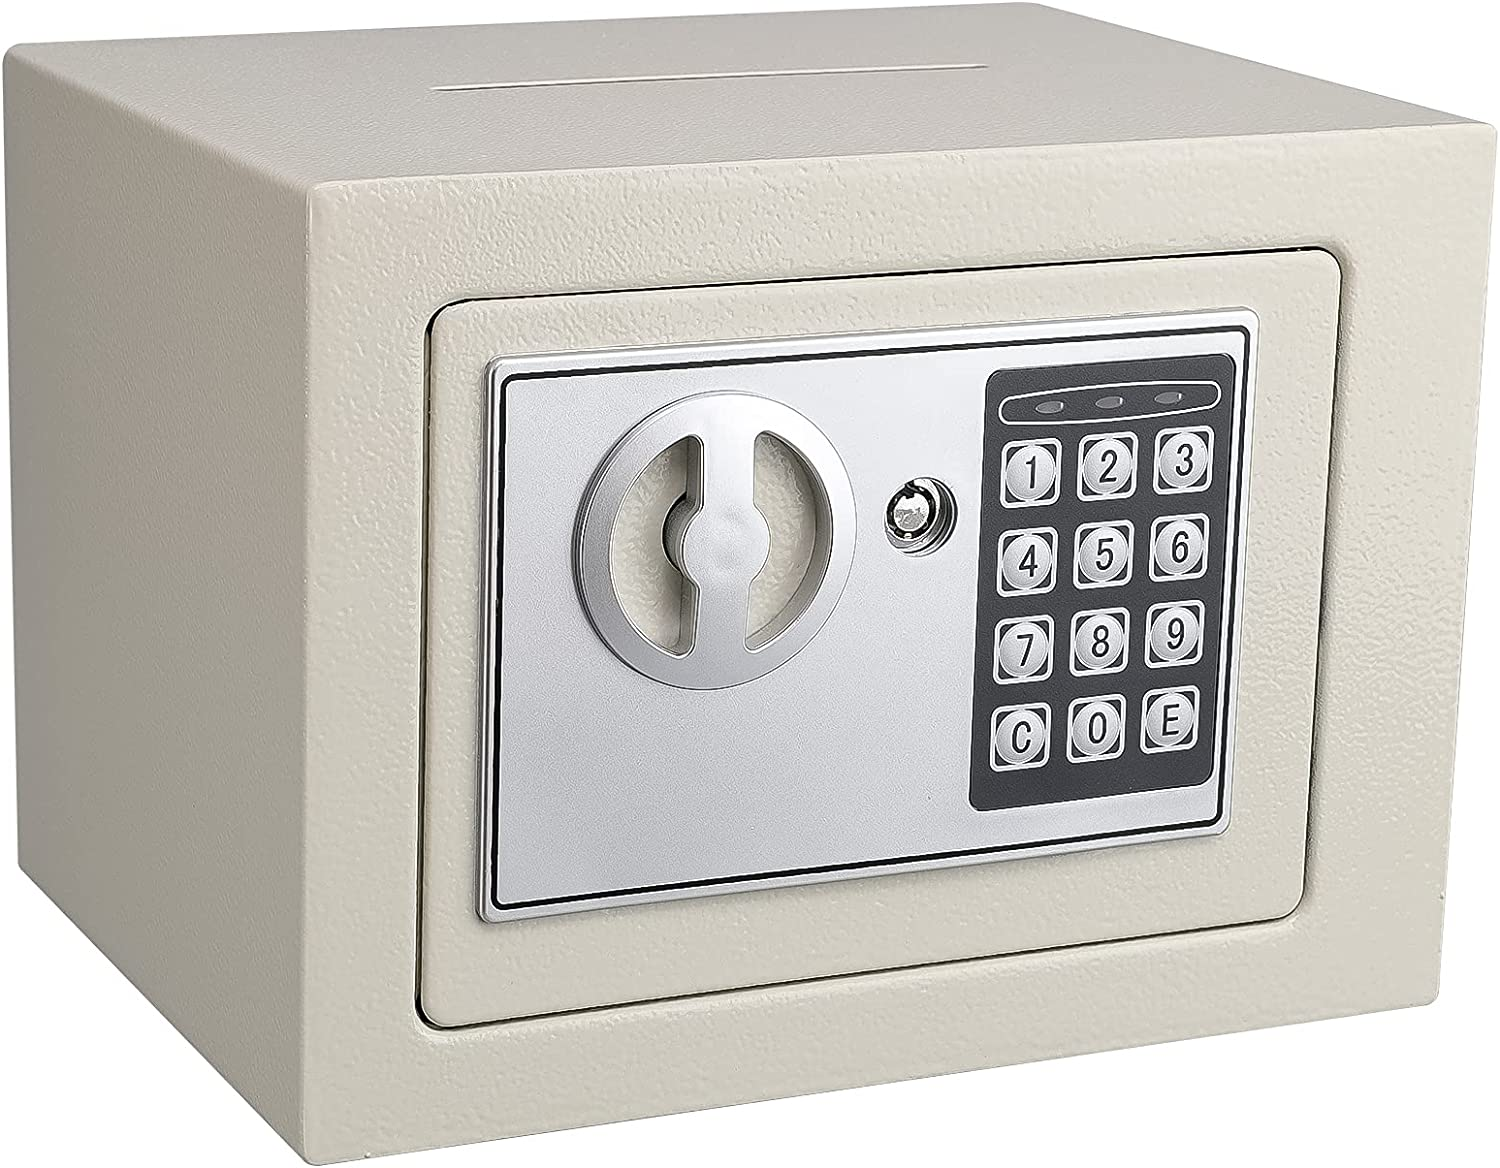 KYODOLED Mini Small Safe Box for Home Office,Electronic Personal Safe Box with Keypad and Slot,Digital Security Steel Cabinet Safe for Hotel Business,Office,0.23 Cubic Feet White